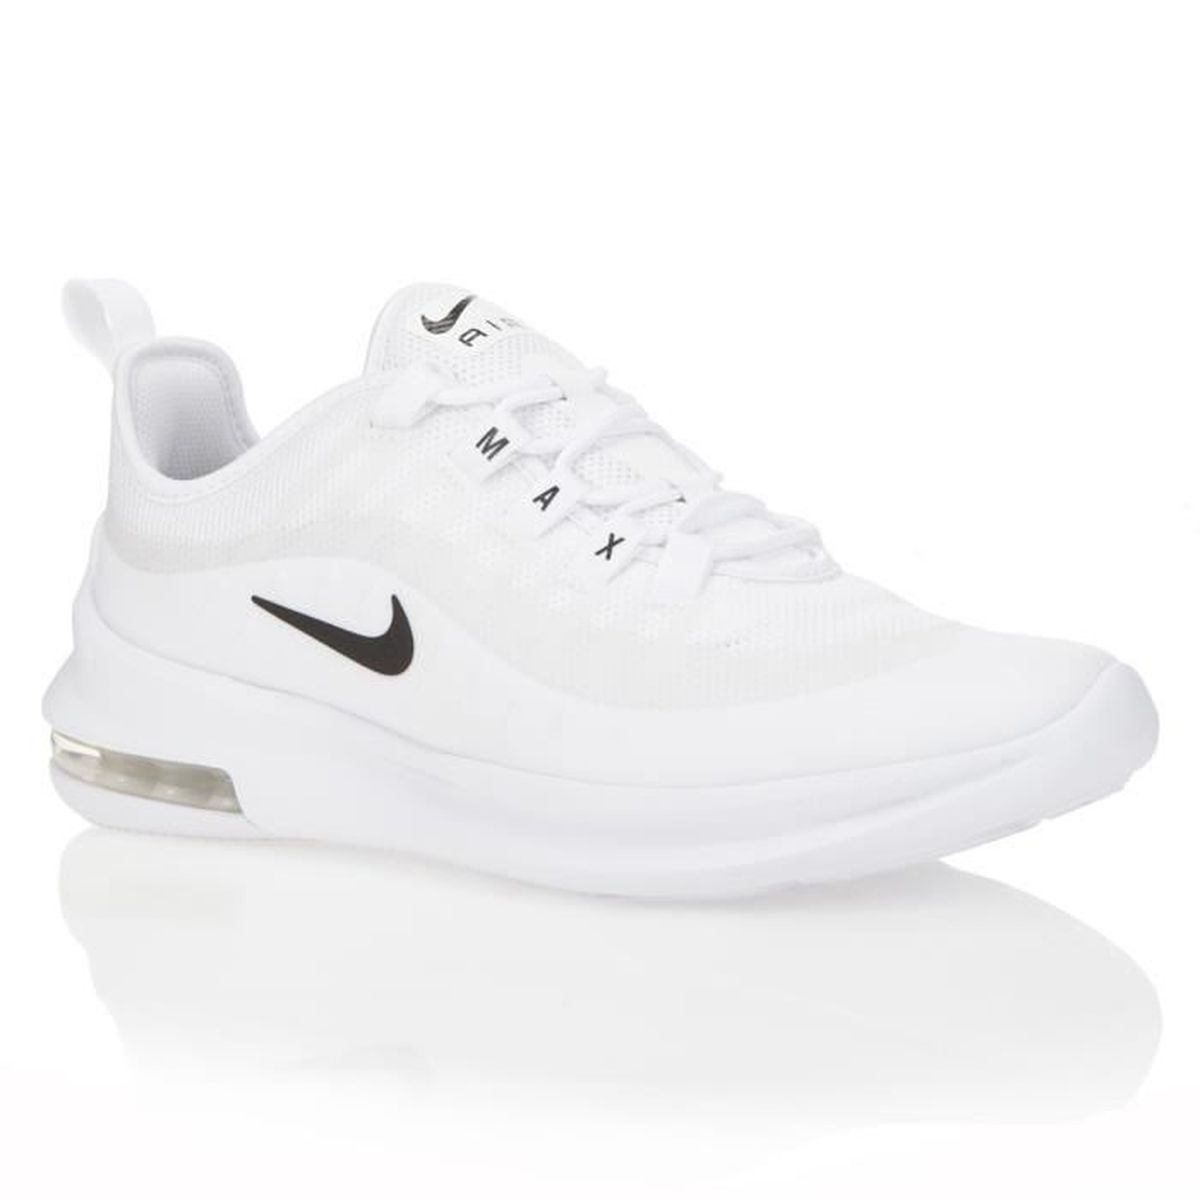 NIKE Baskets Air Max Axis - Homme - Blanc